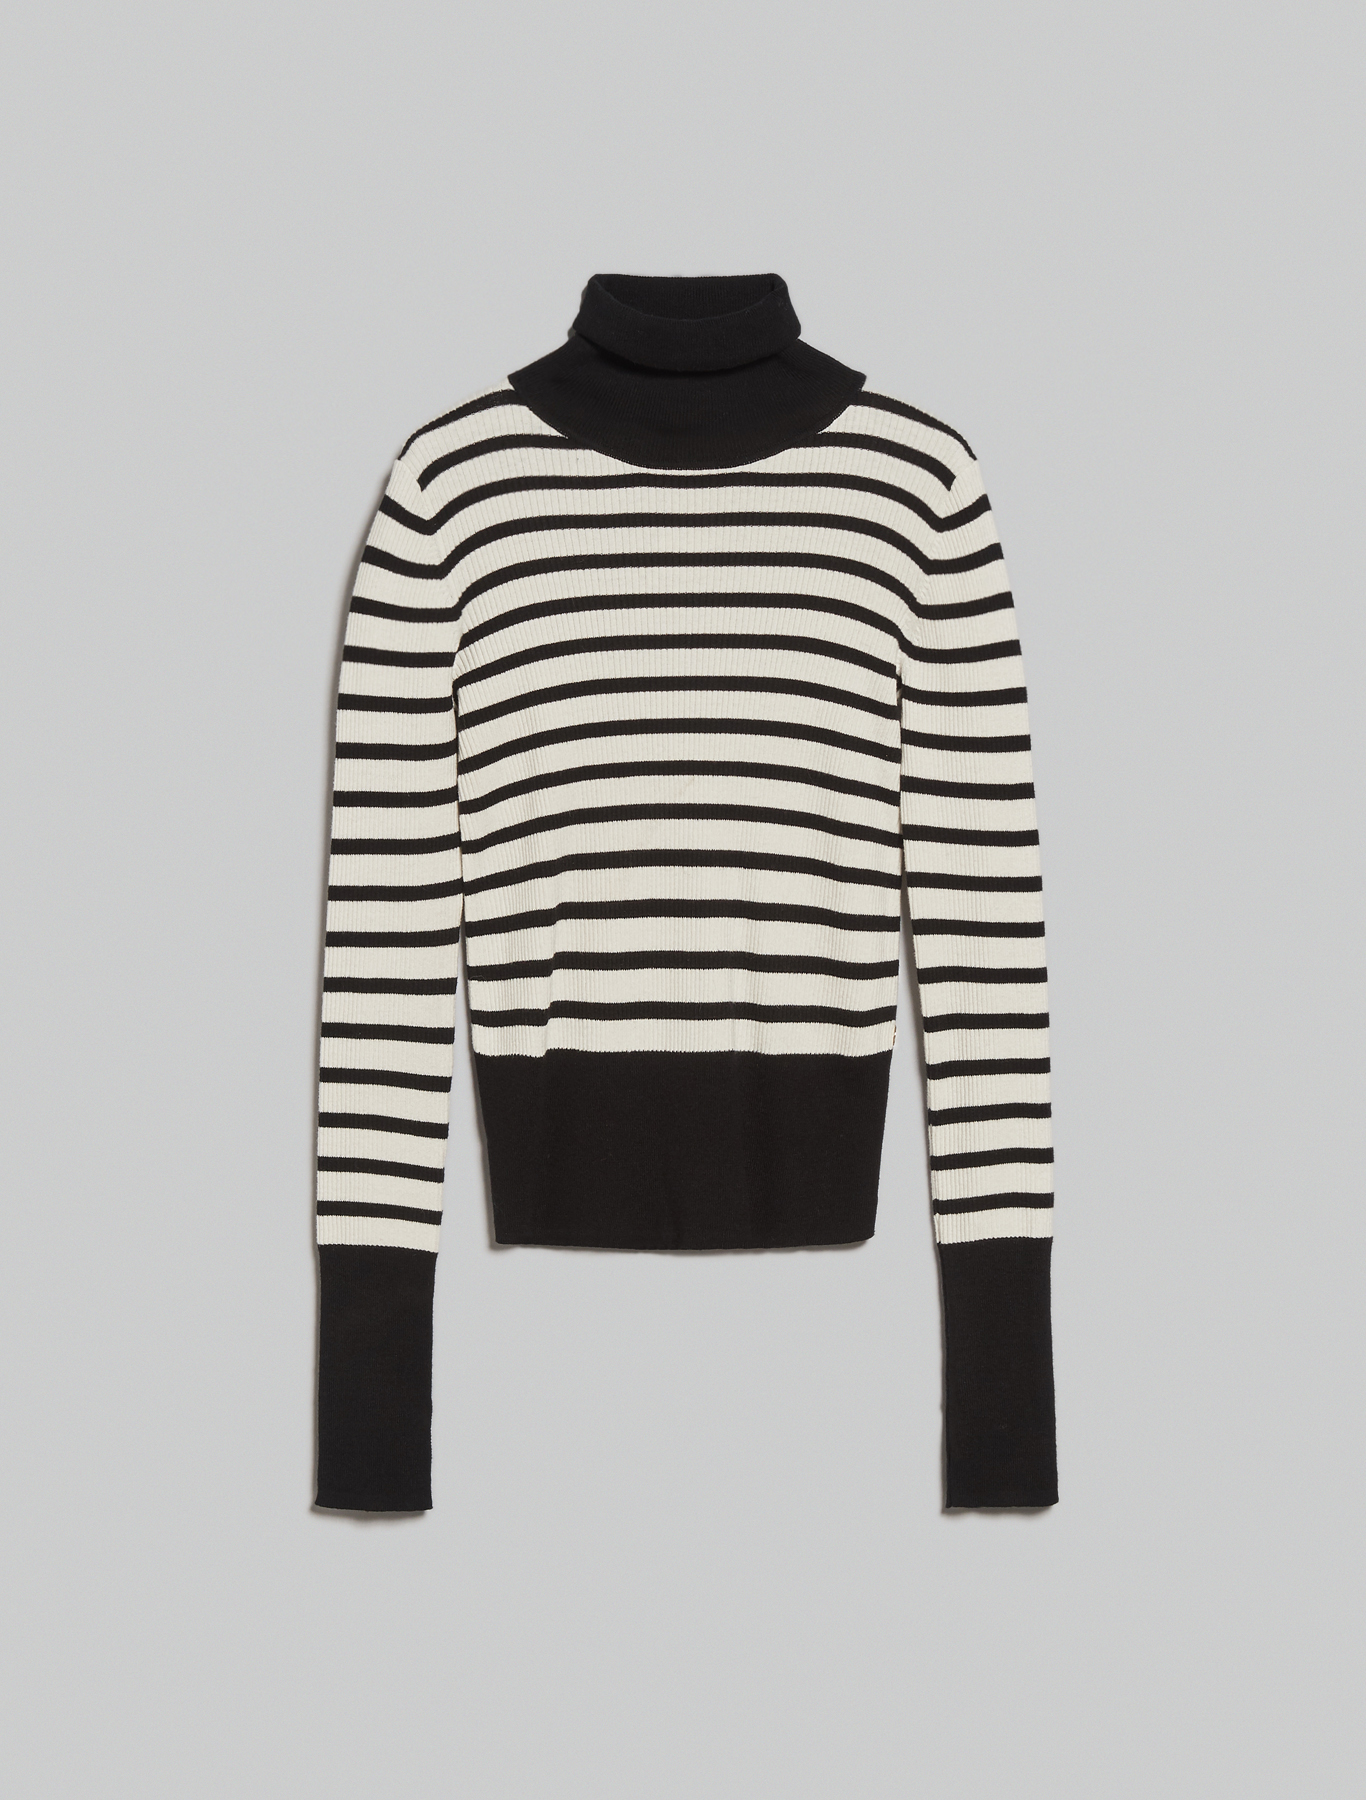 Cotton and cashmere turtleneck - black - pennyblack